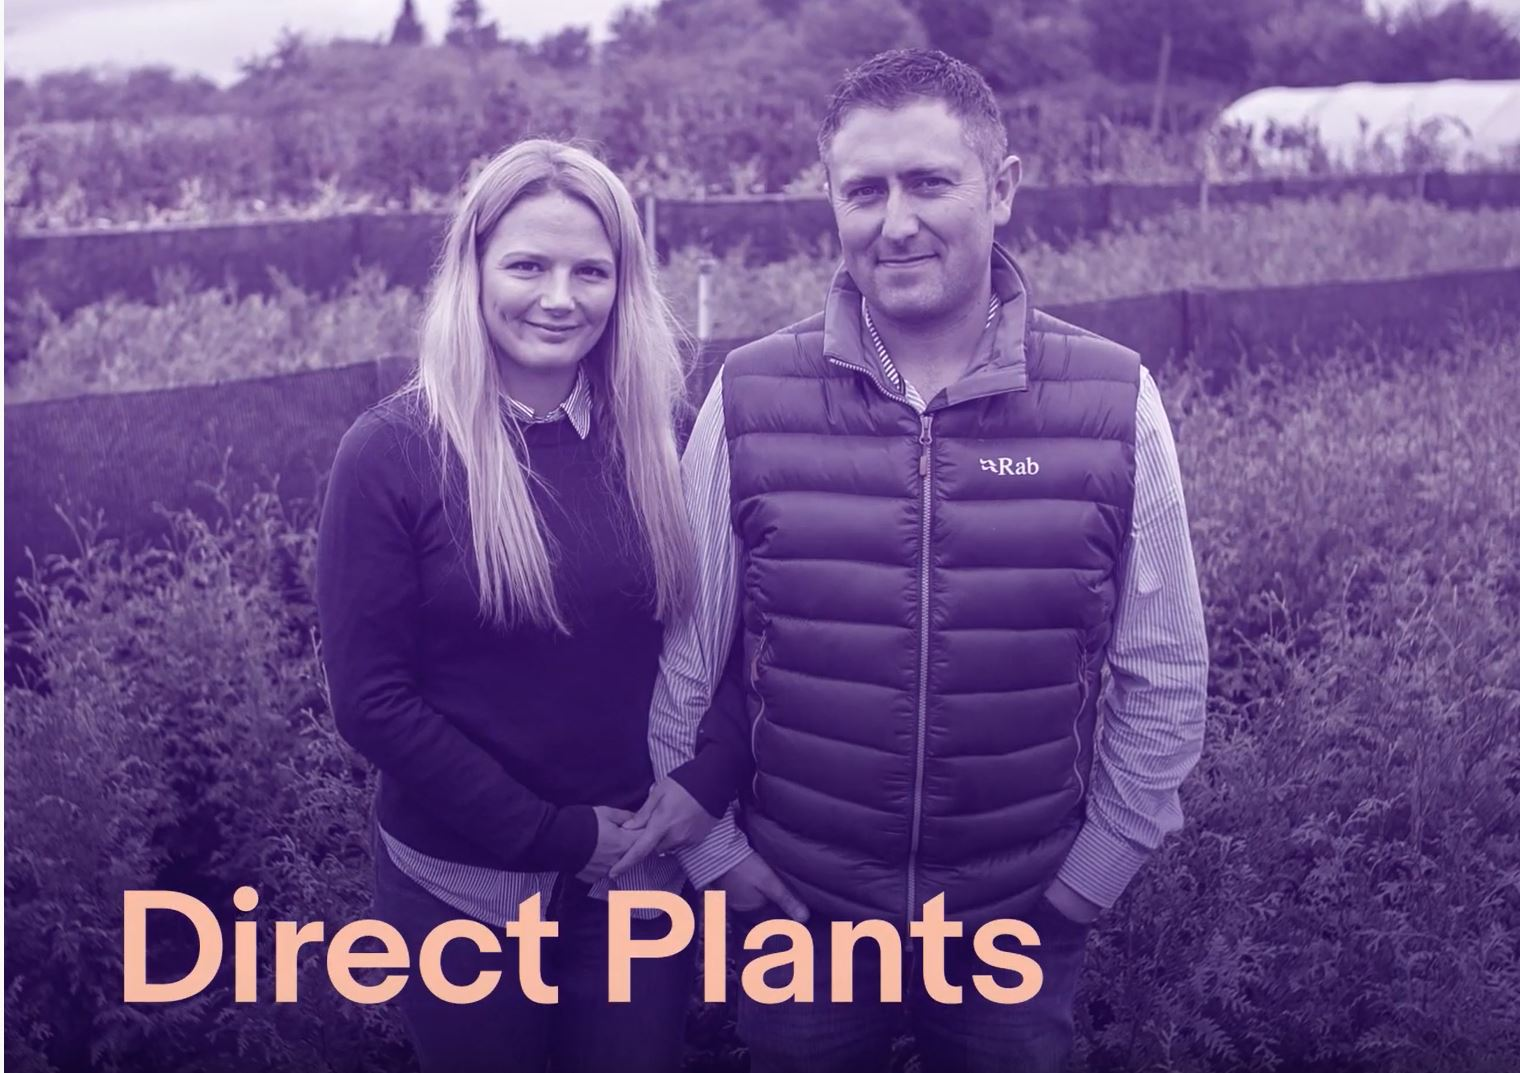 Take a look behind the scenes at Direct Plants